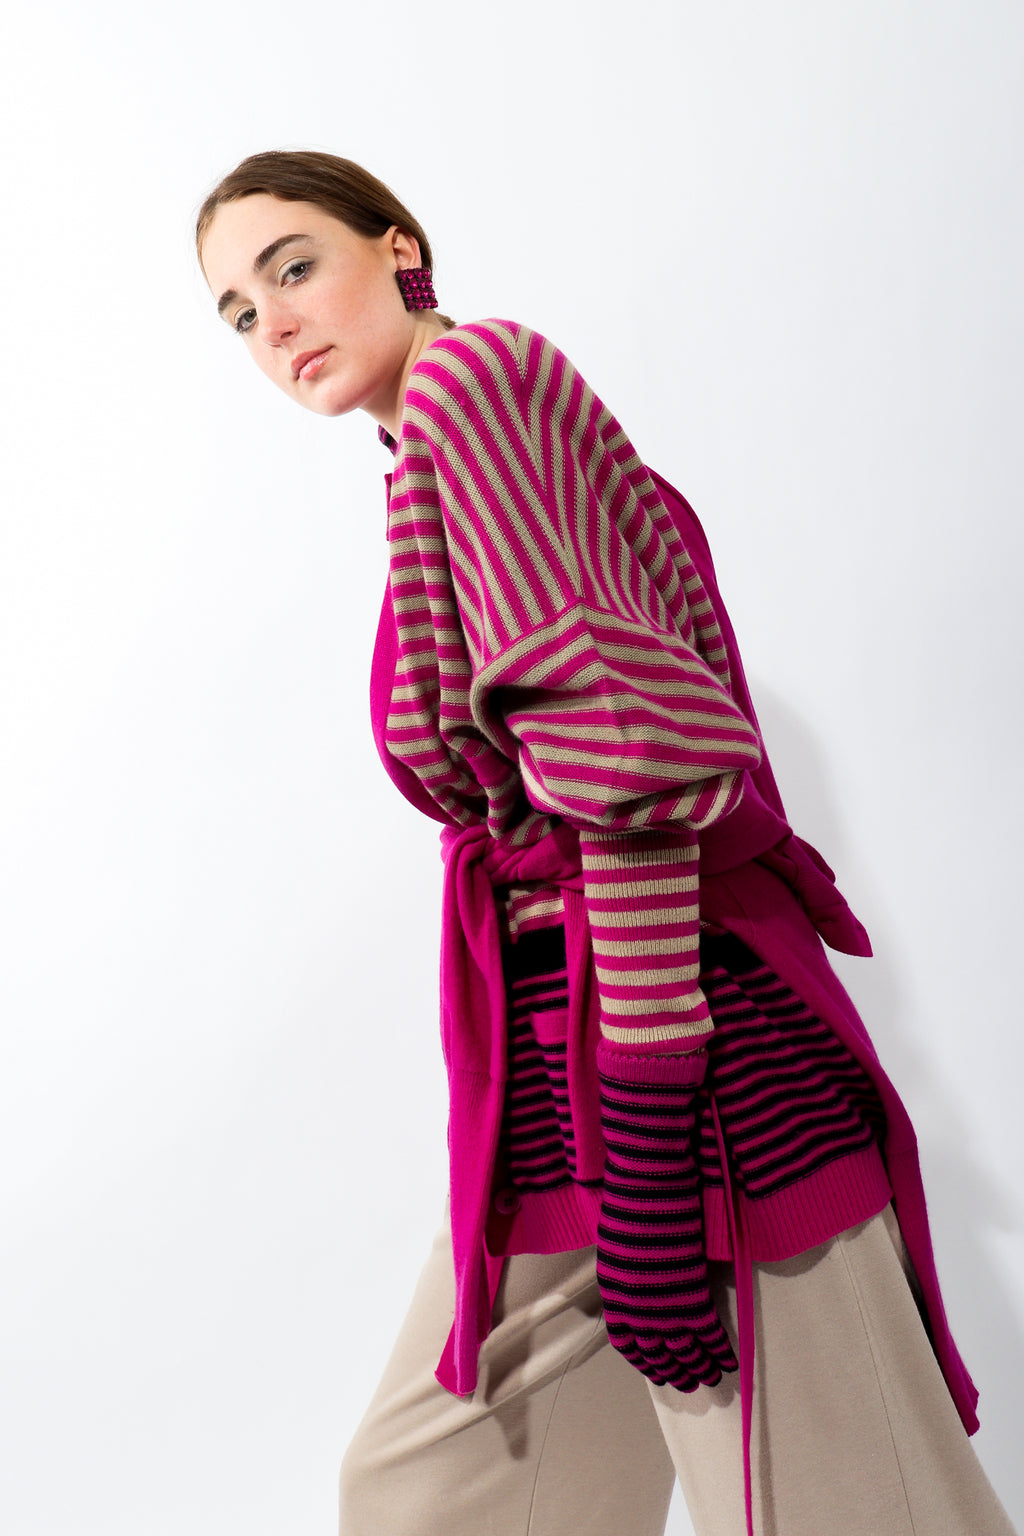 Girl wearing Vintage Sonia Rykiel Fuchsia Stripe Boyfriend Cardigan, gloves, and tan pants